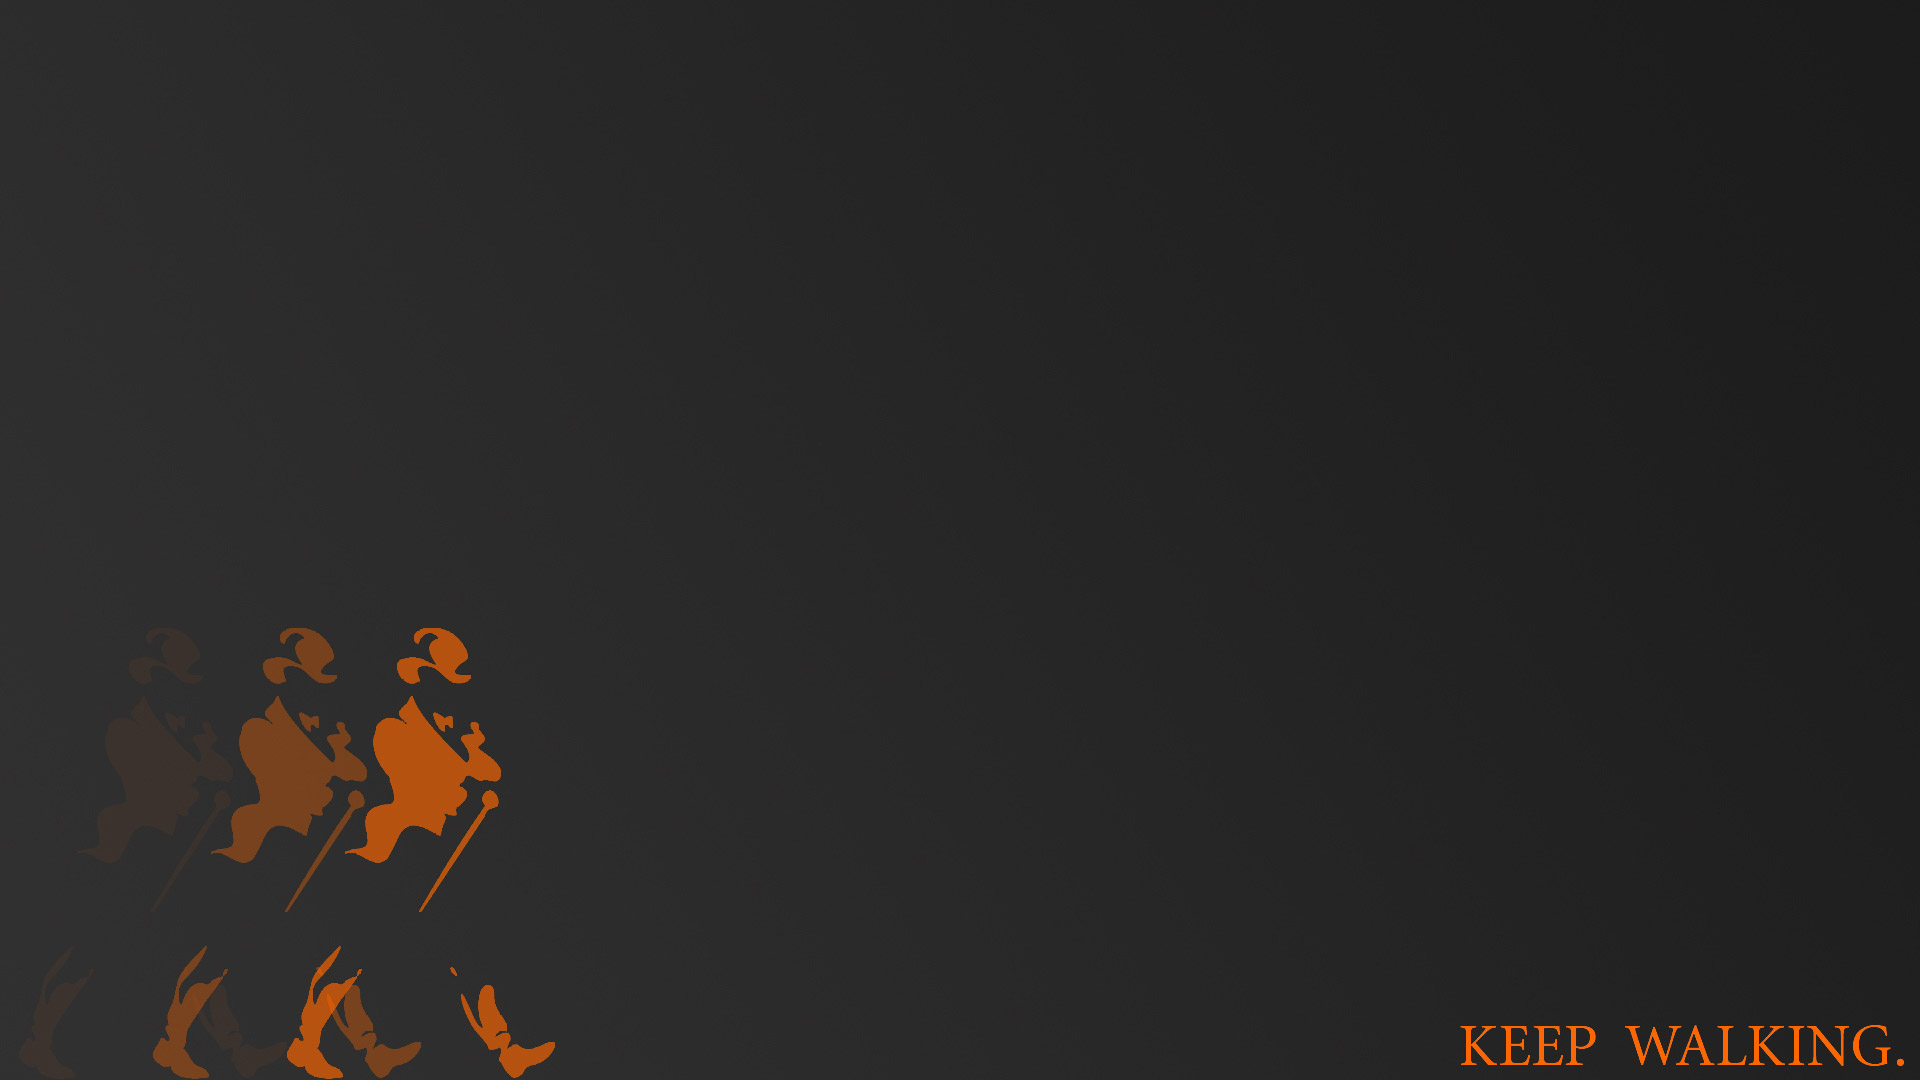 Johnnie Walker Keep Walking Grey HD Wallpaper Background